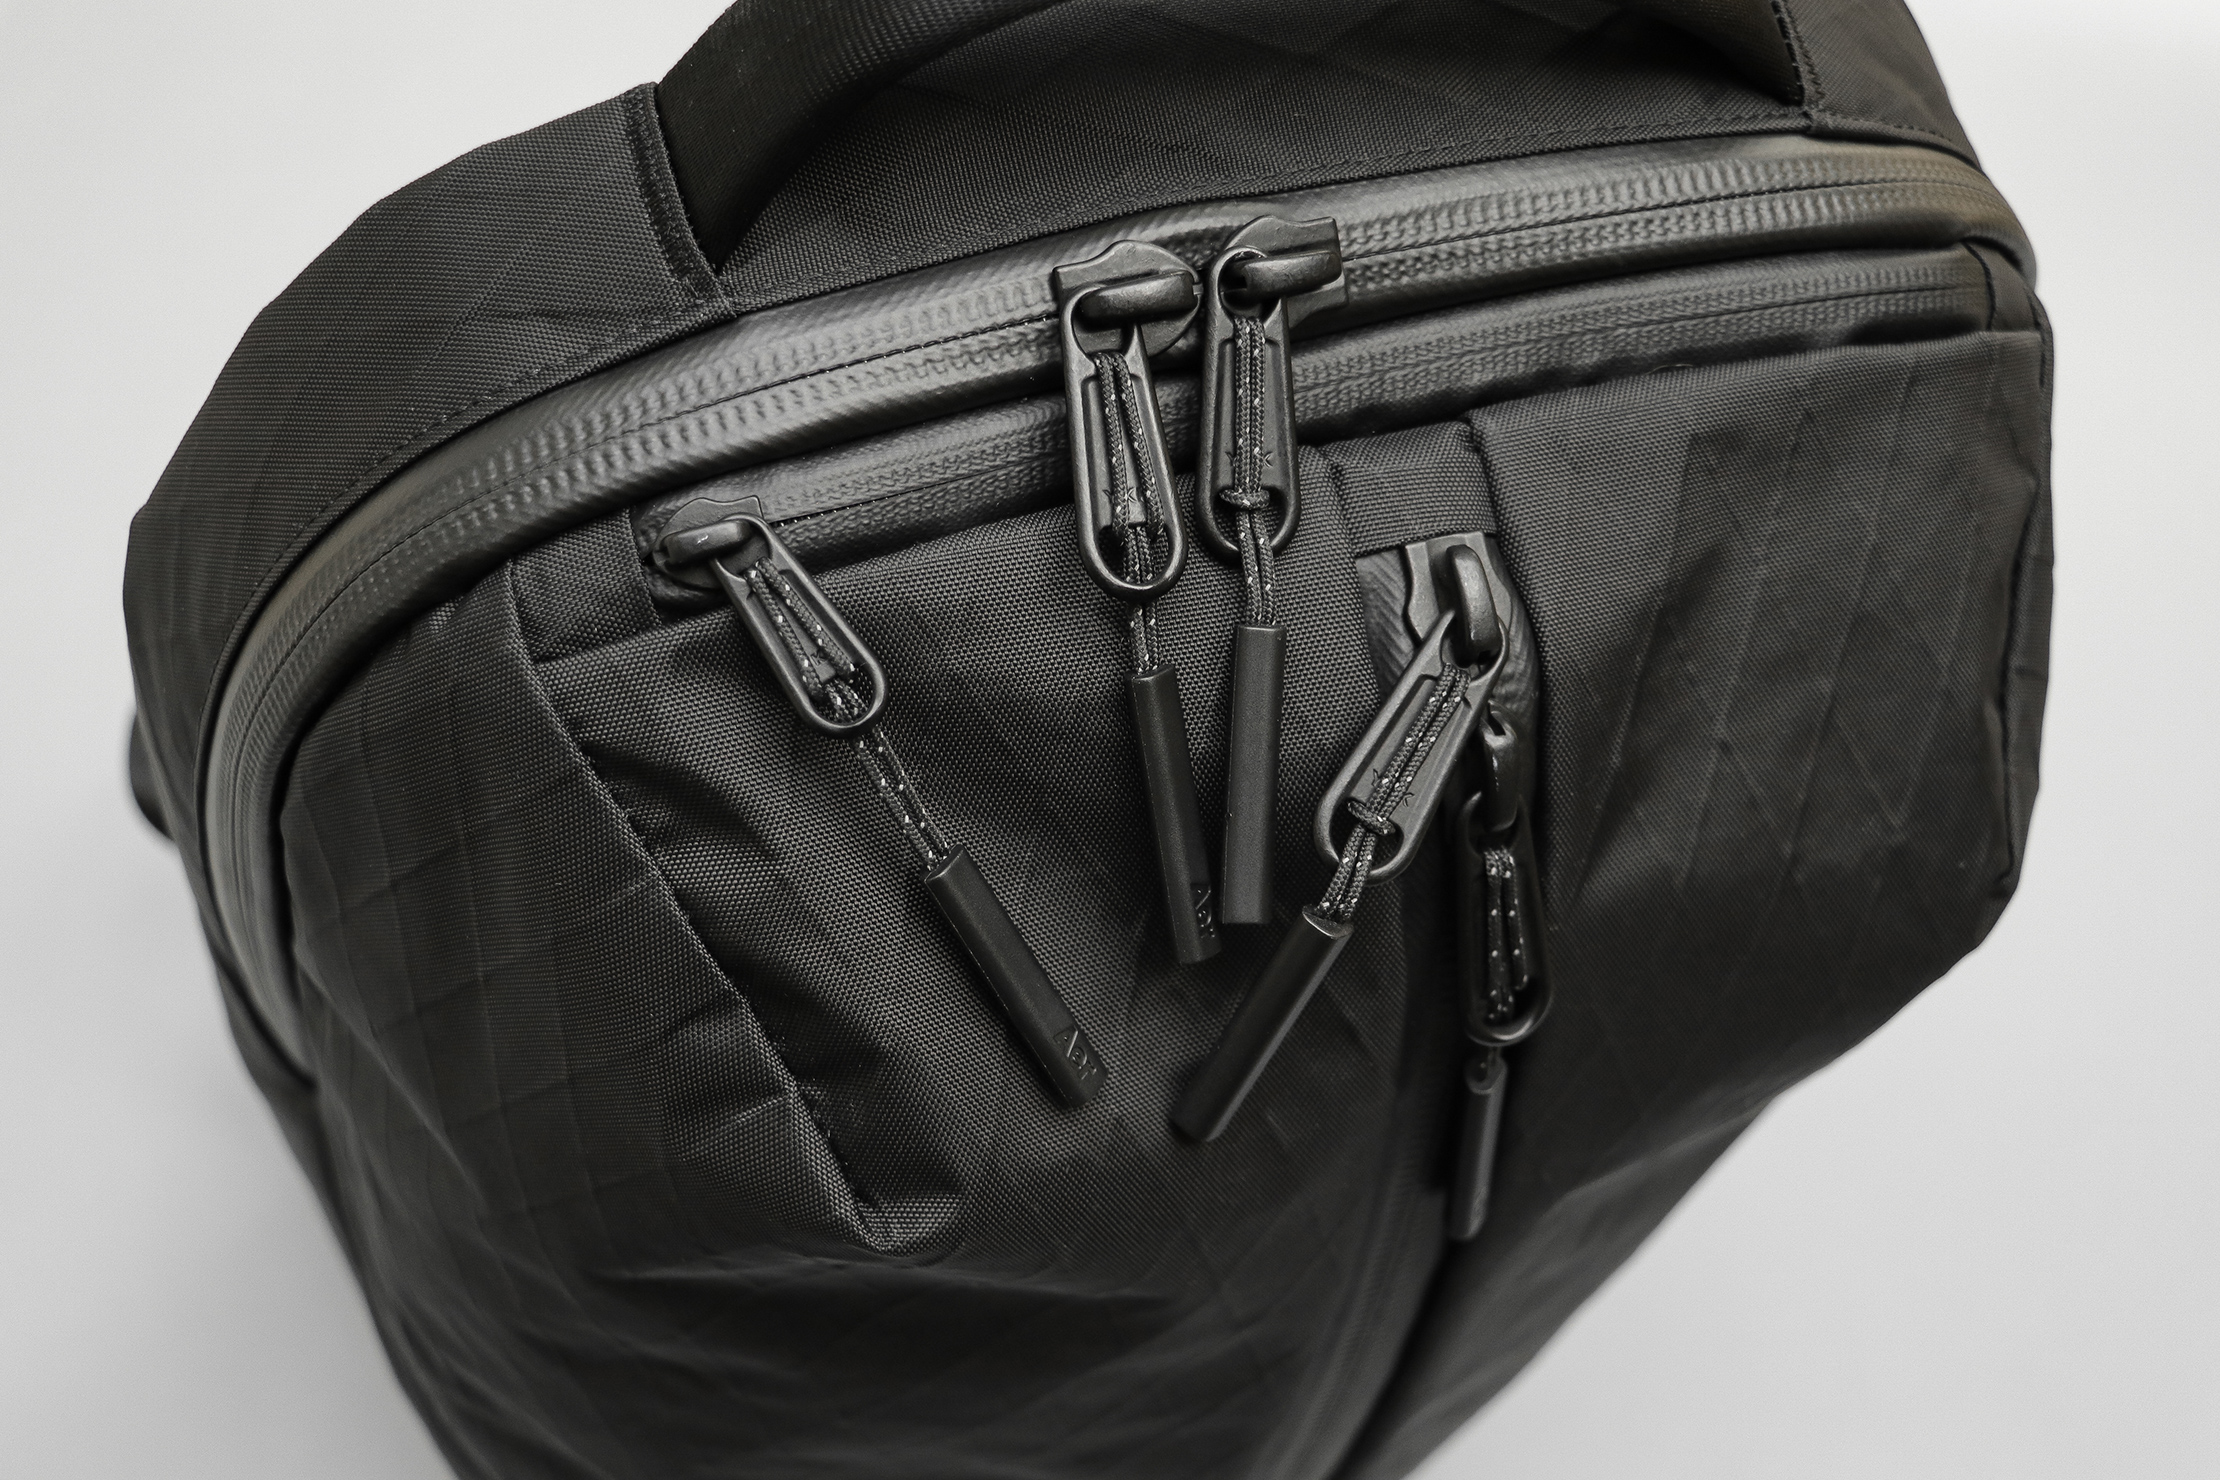 Aer Fit Pack 2 Clunky Zippers Can Get In The Way